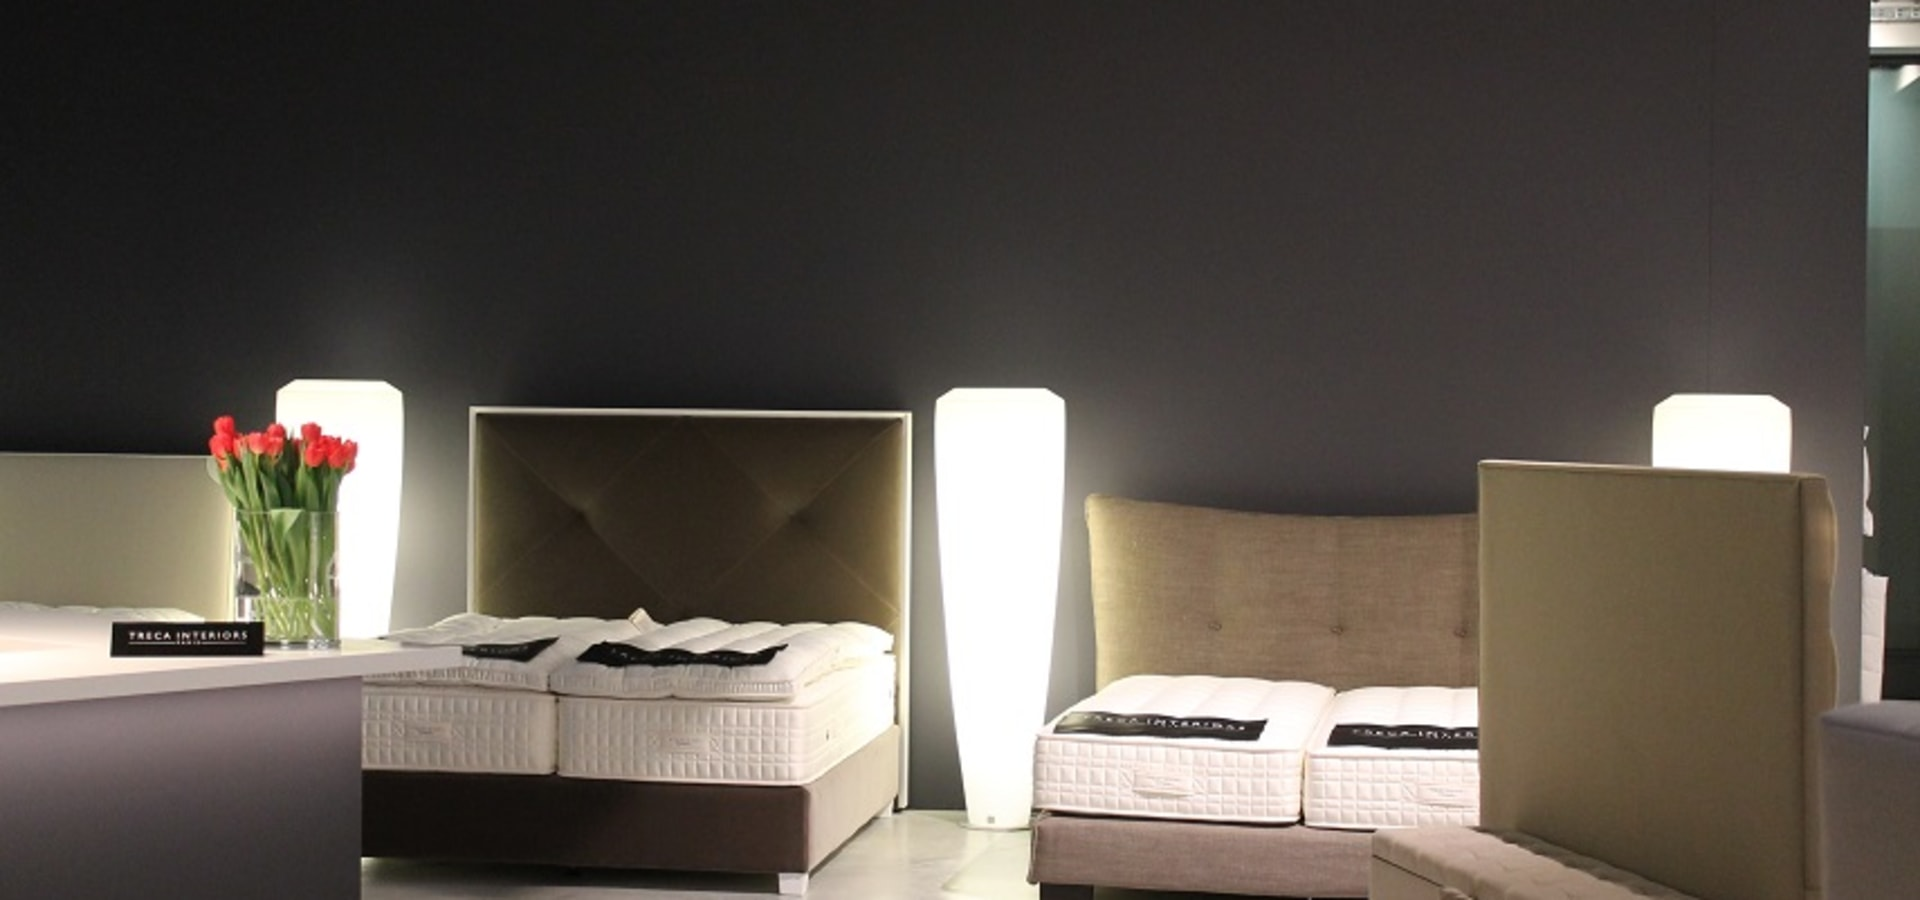 betten concept store stuttgart m bel accessoires in stuttgart homify. Black Bedroom Furniture Sets. Home Design Ideas